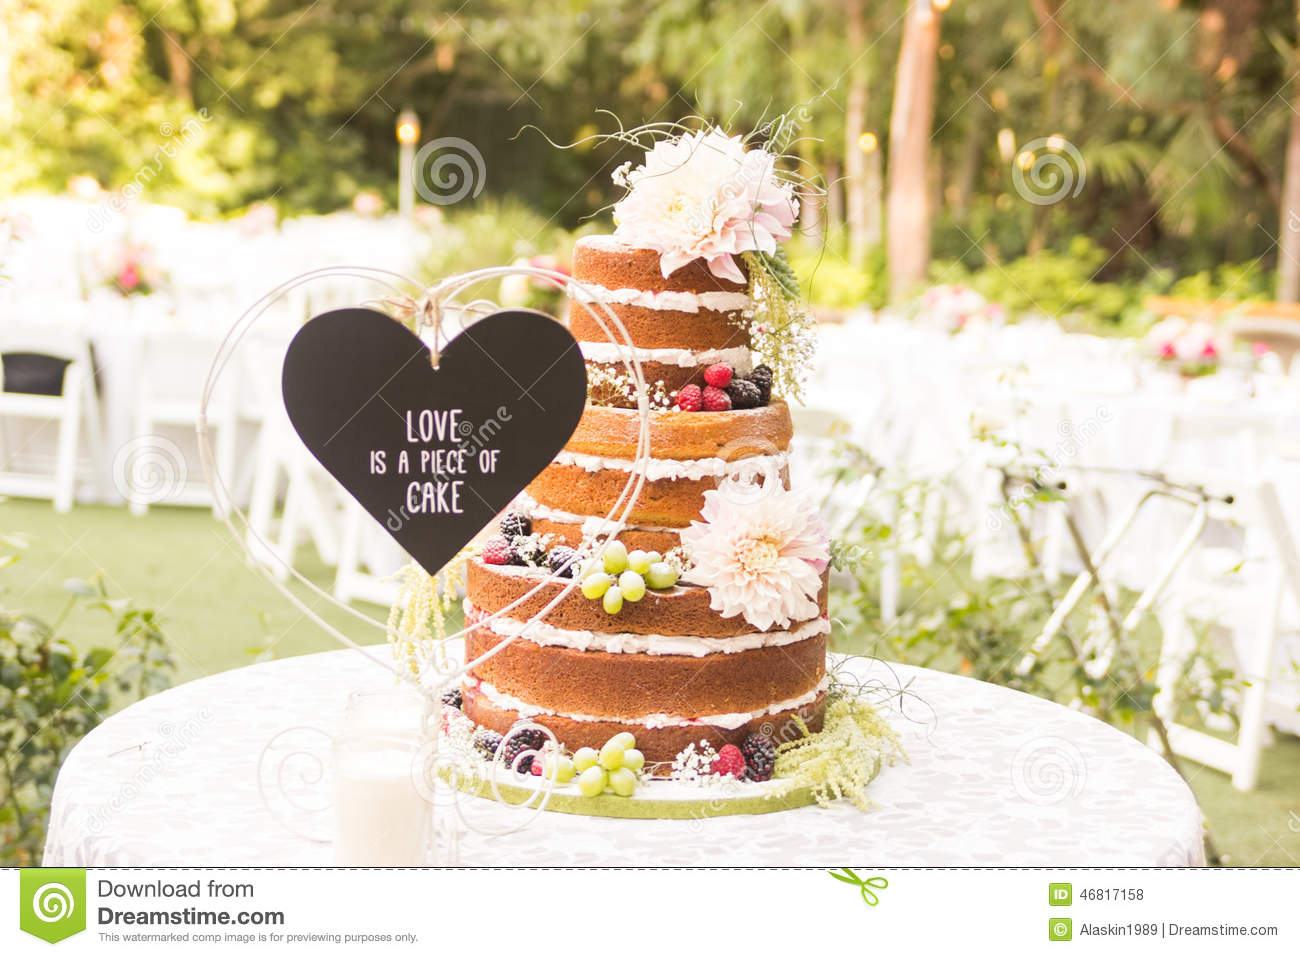 18 063 Wedding Cake Frosting Photos Free Royalty Free Stock Photos From Dreamstime